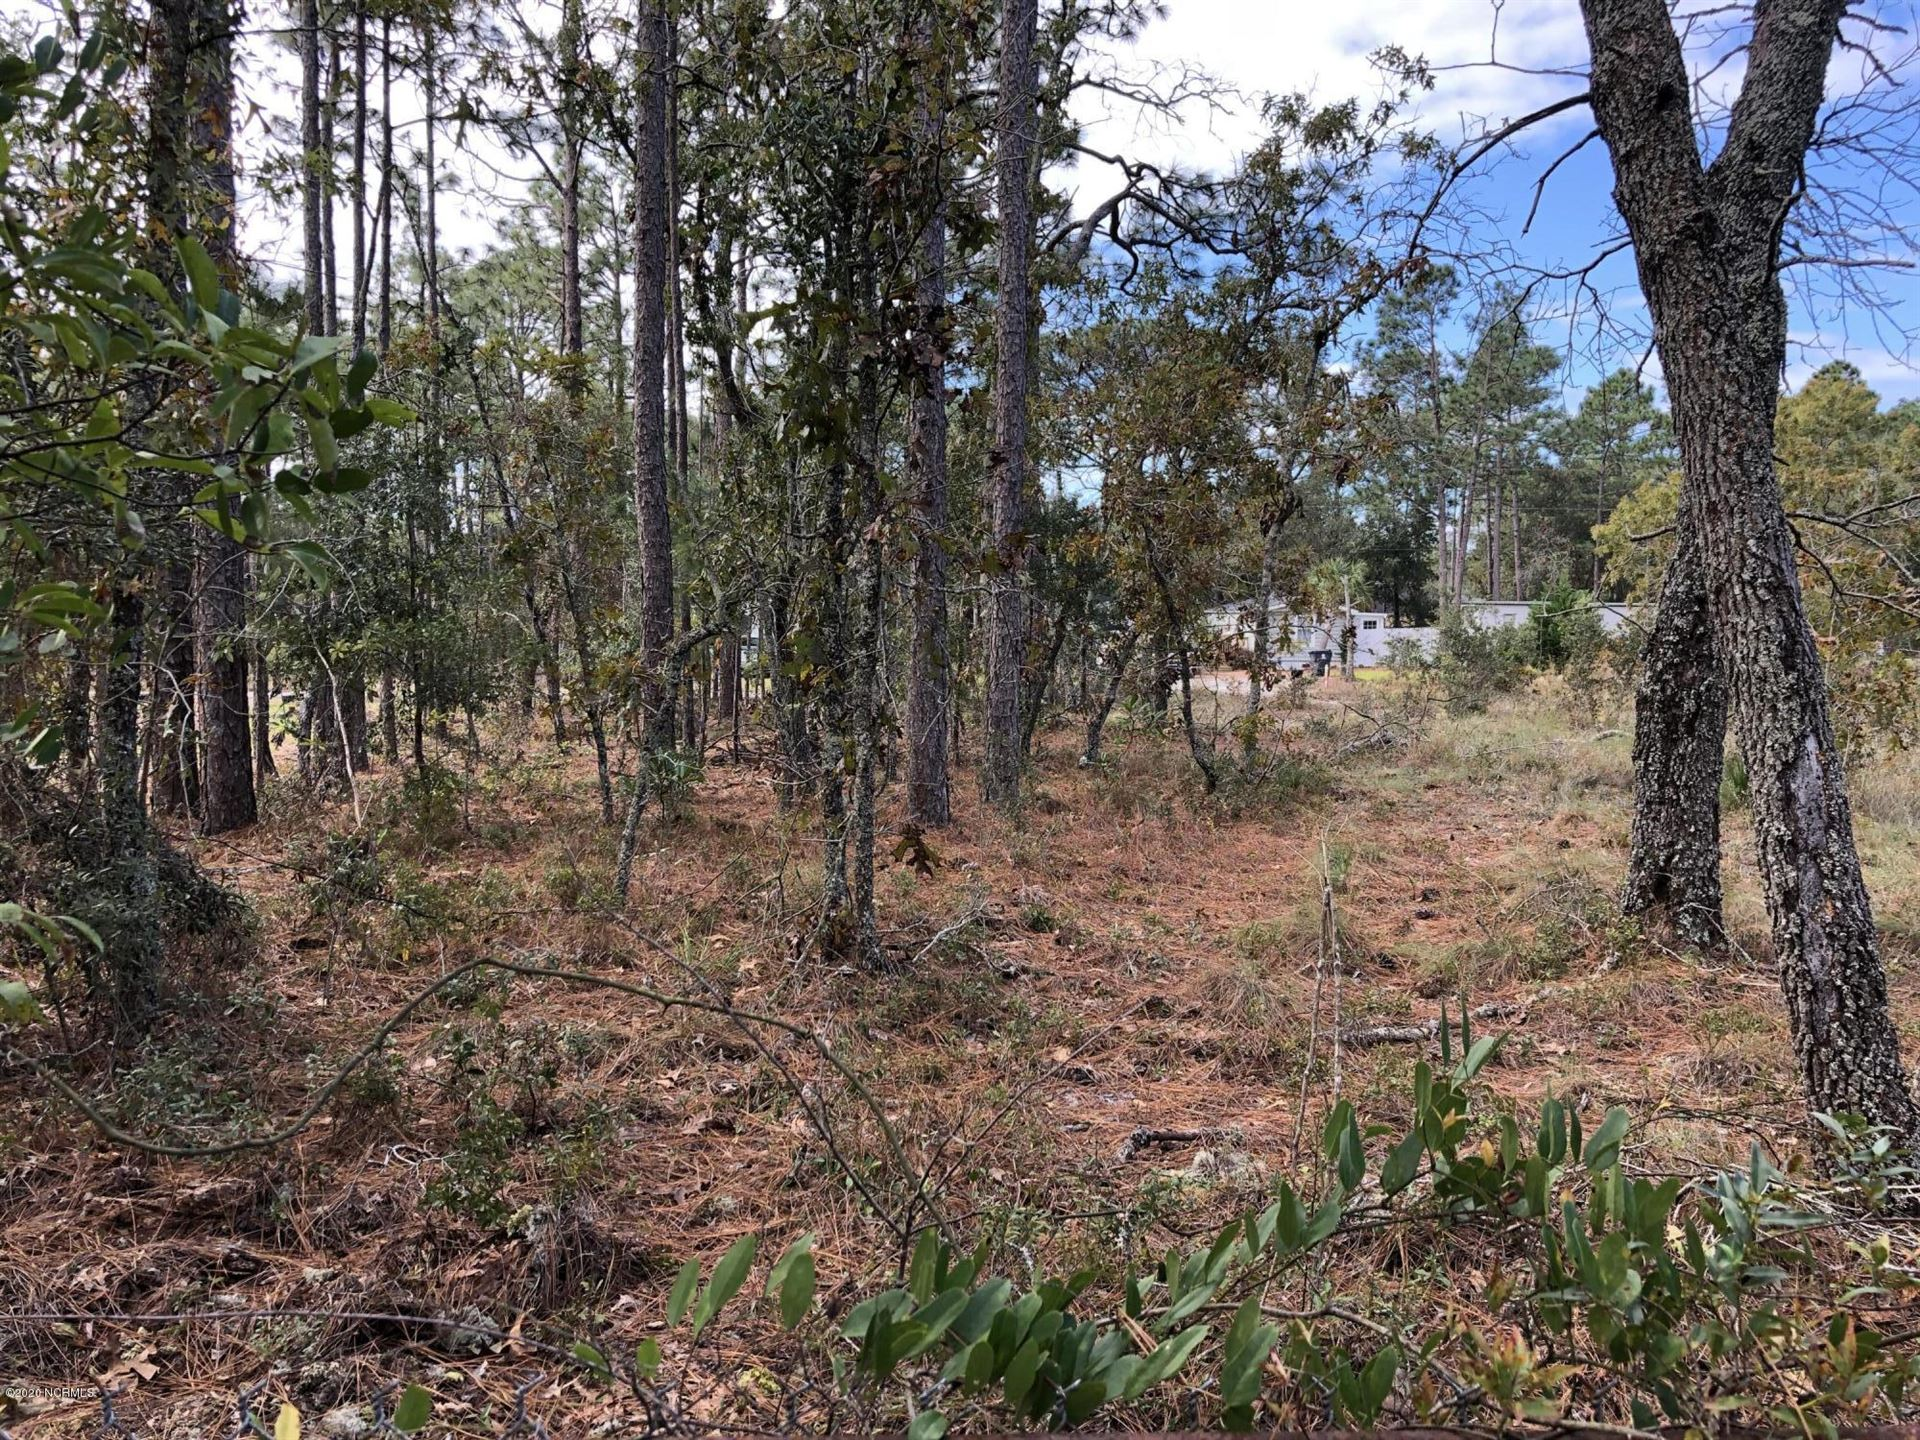 Photo of L-188 Sycamore Road, Southport, NC 28461 (MLS # 100290113)